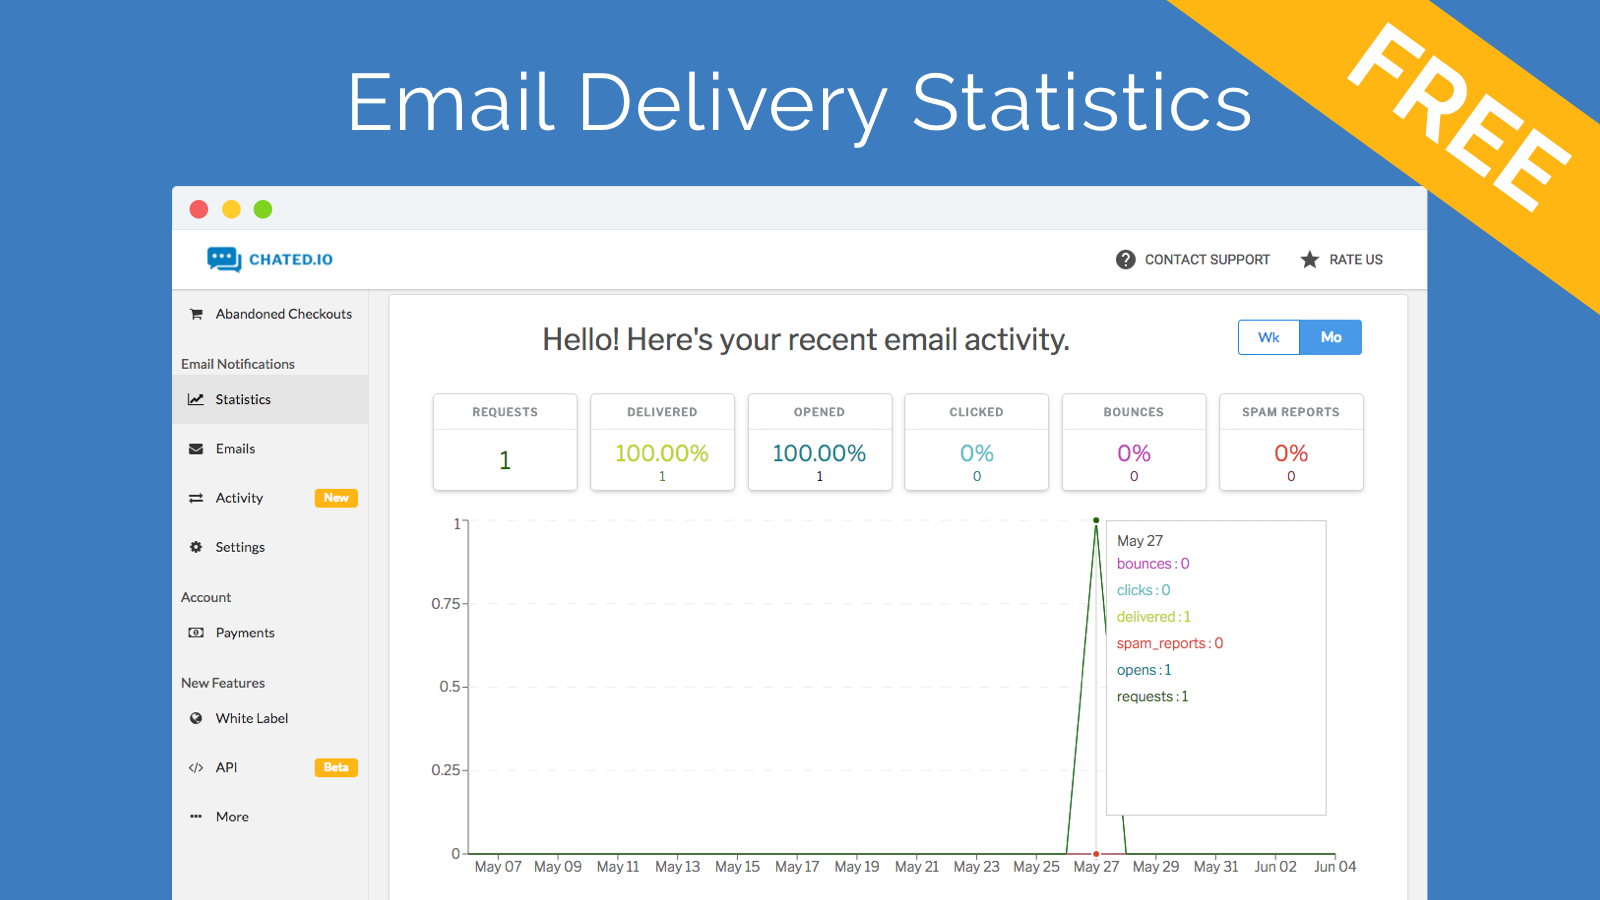 Email Delivery Statistics